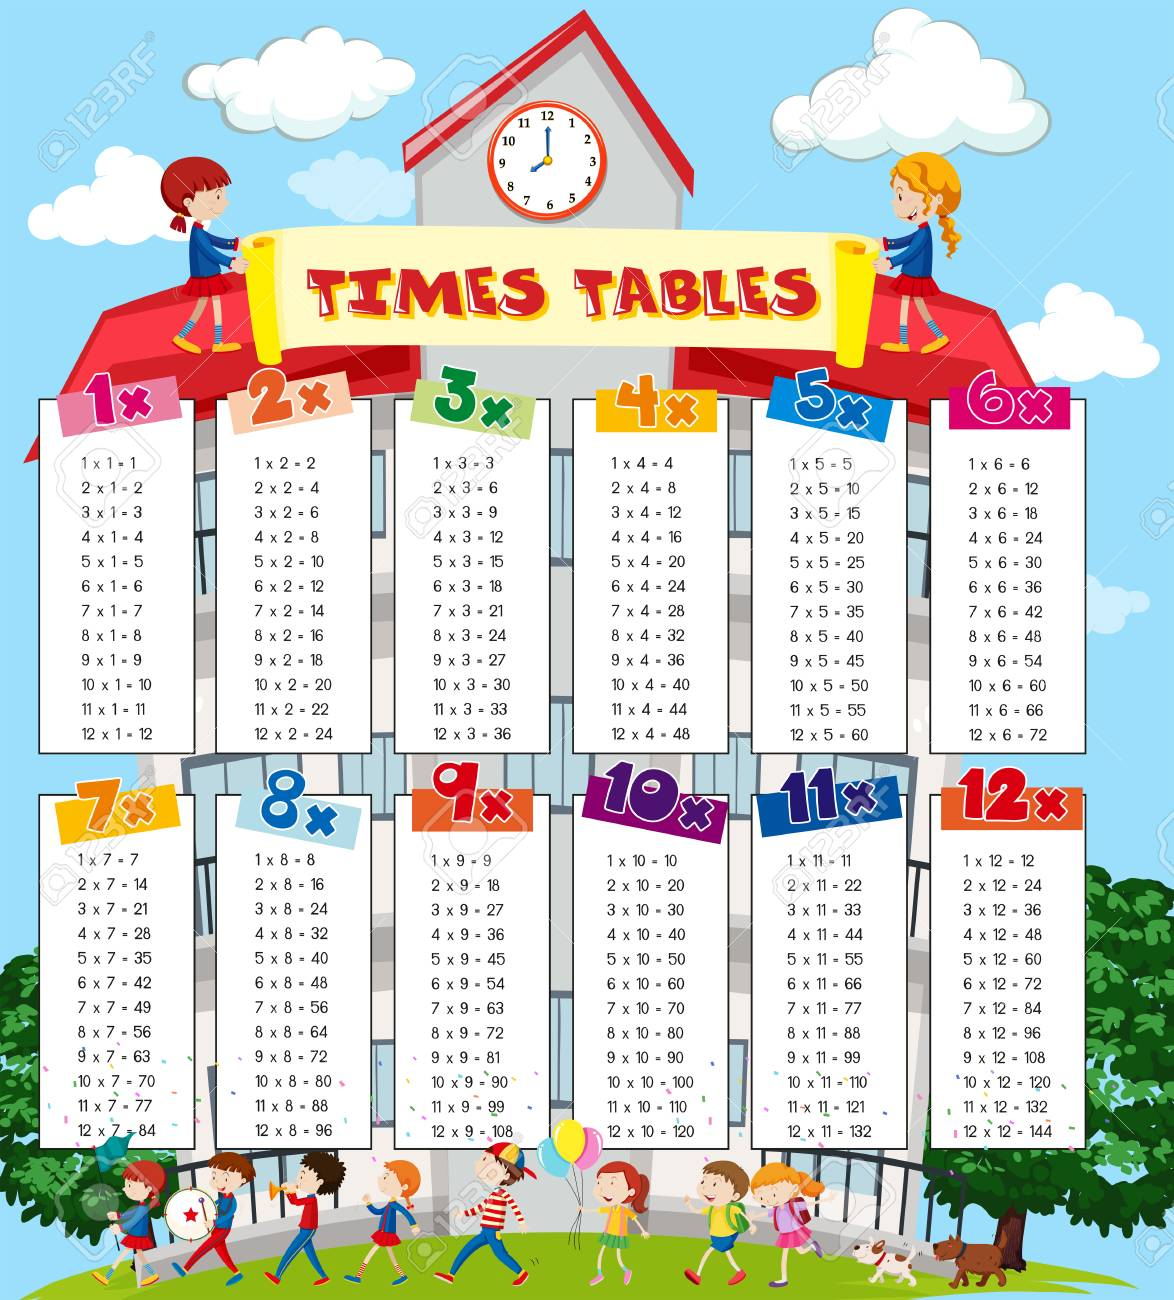 Fabulous Times Tables Chart With Kids At School Background Illustration Beutiful Home Inspiration Ommitmahrainfo